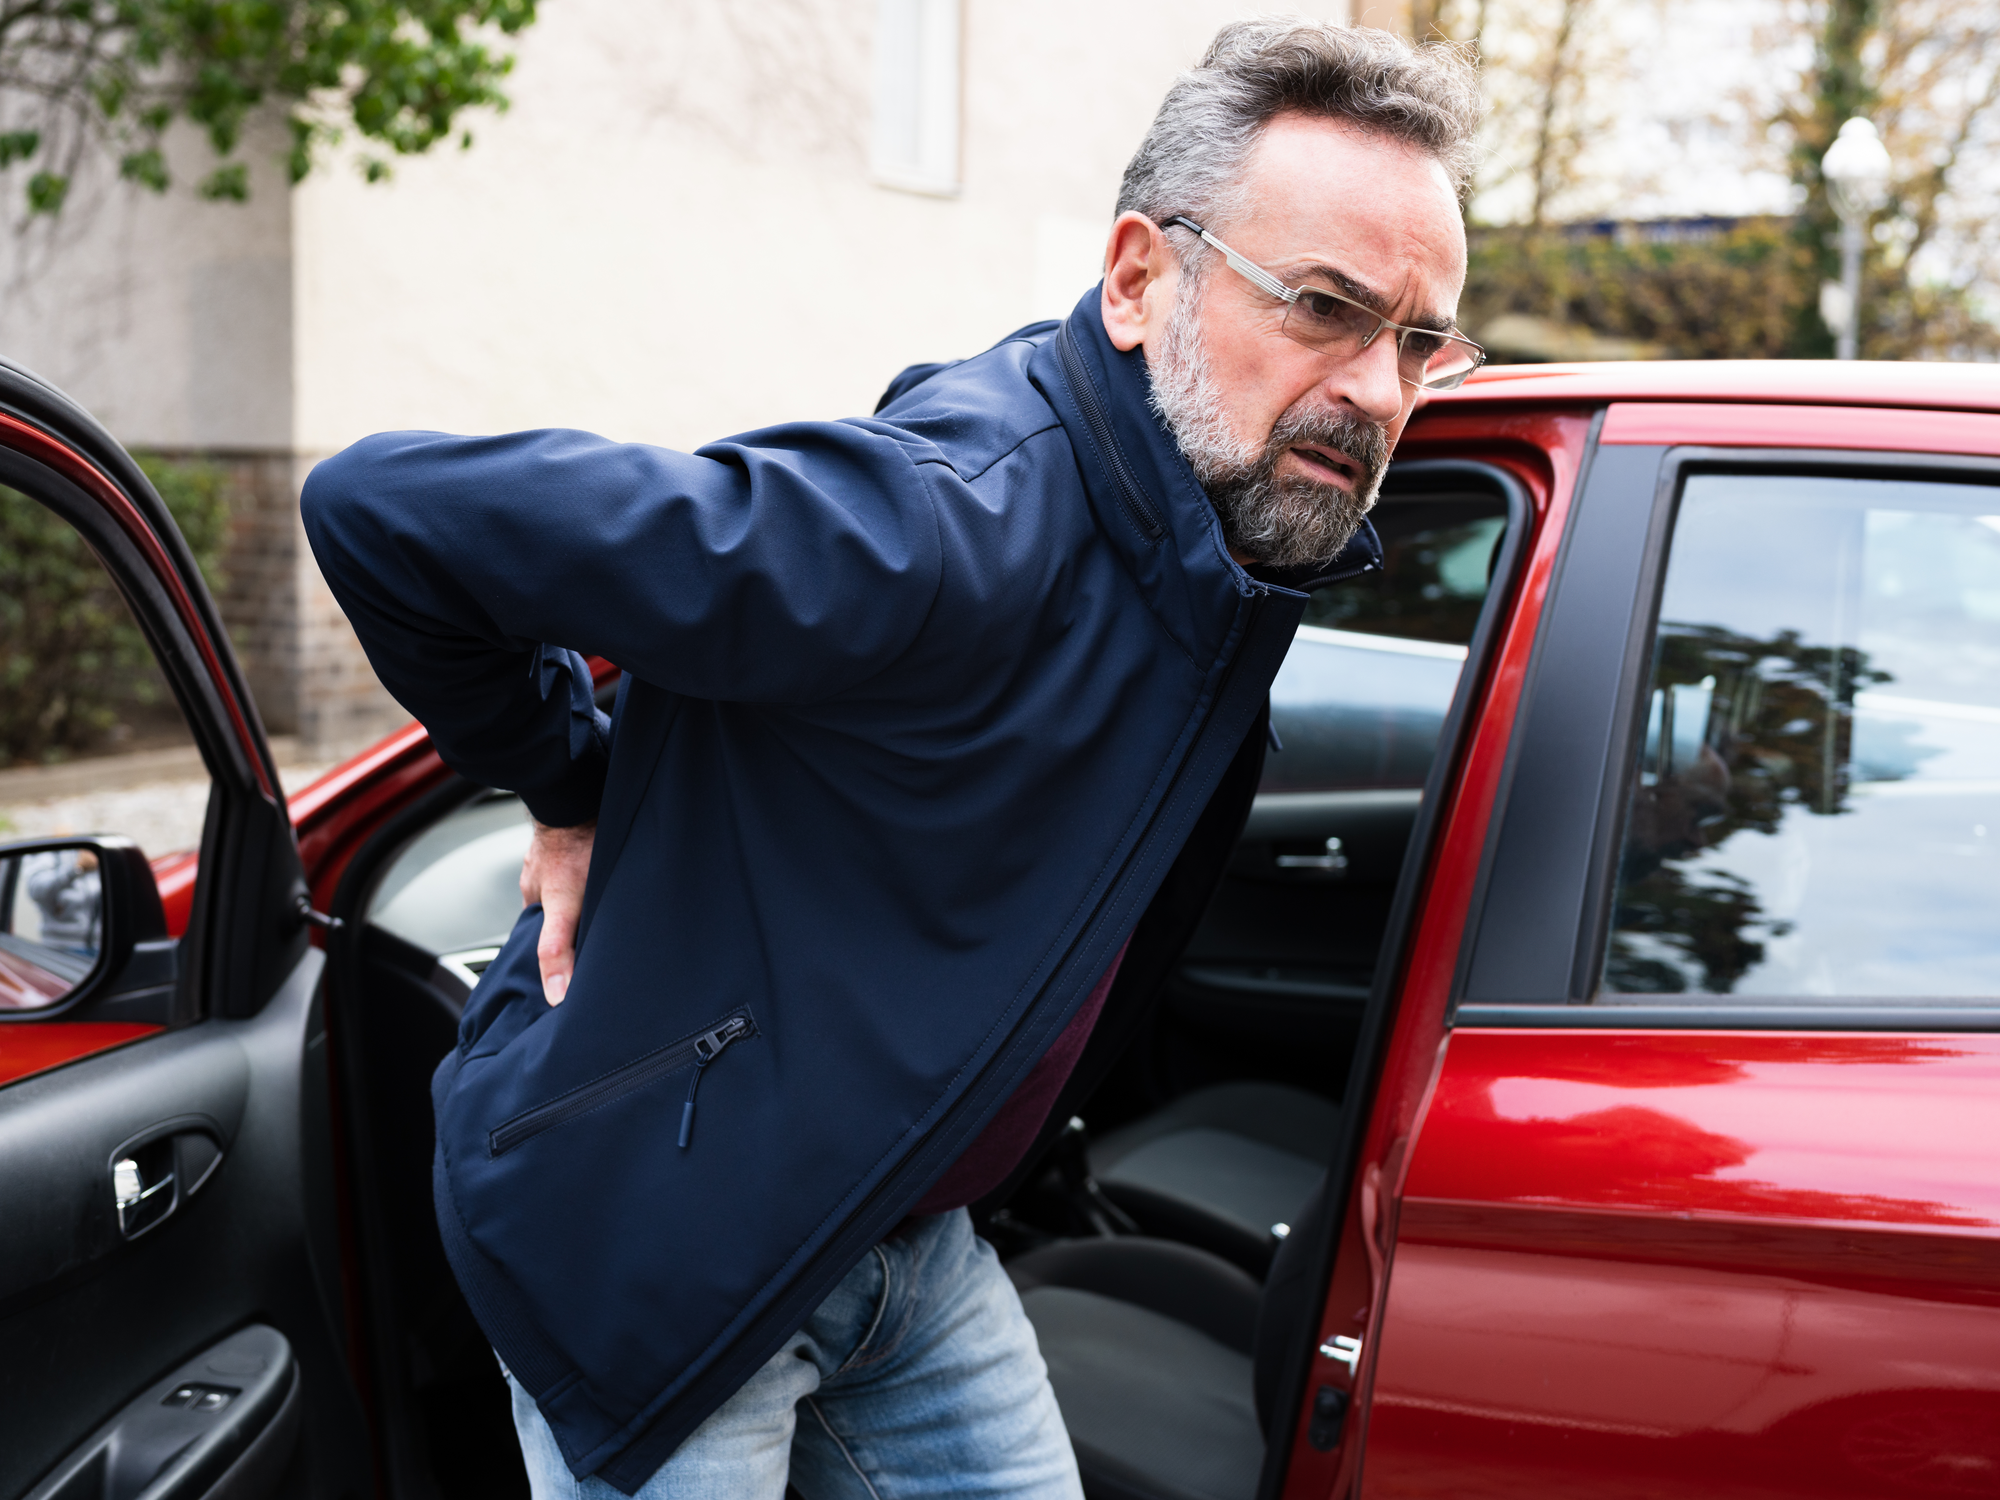 How Can Visiting a Chiropractor Benefit Me After an Auto Accident?